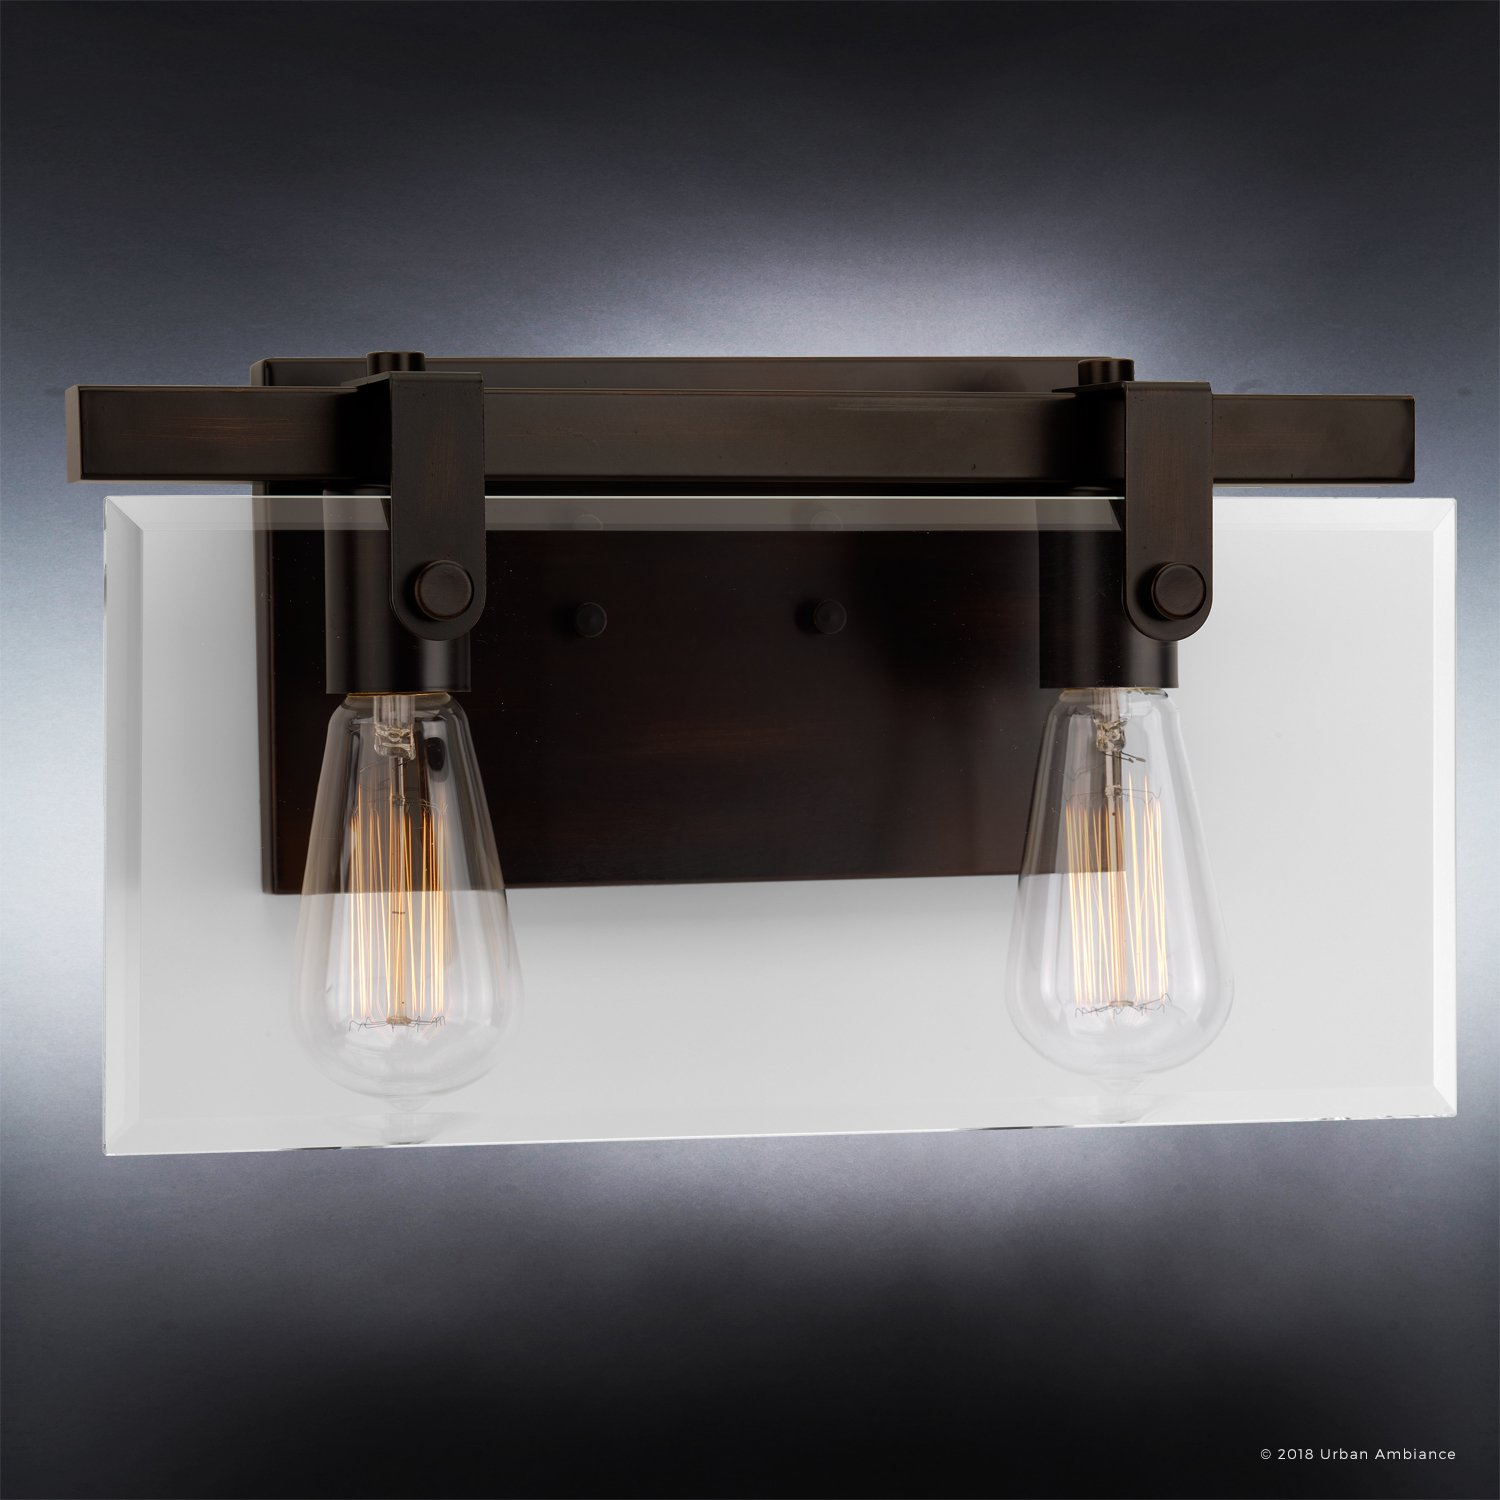 Luxury Modern Farmhouse Bathroom Vanity Light, Medium Size: 8.38'' H x 14.875'' W, with Industrial Chic Style Elements, Olde Bronze Finish, UHP2452 from The Bristol Collection by Urban Ambiance by Urban Ambiance (Image #3)